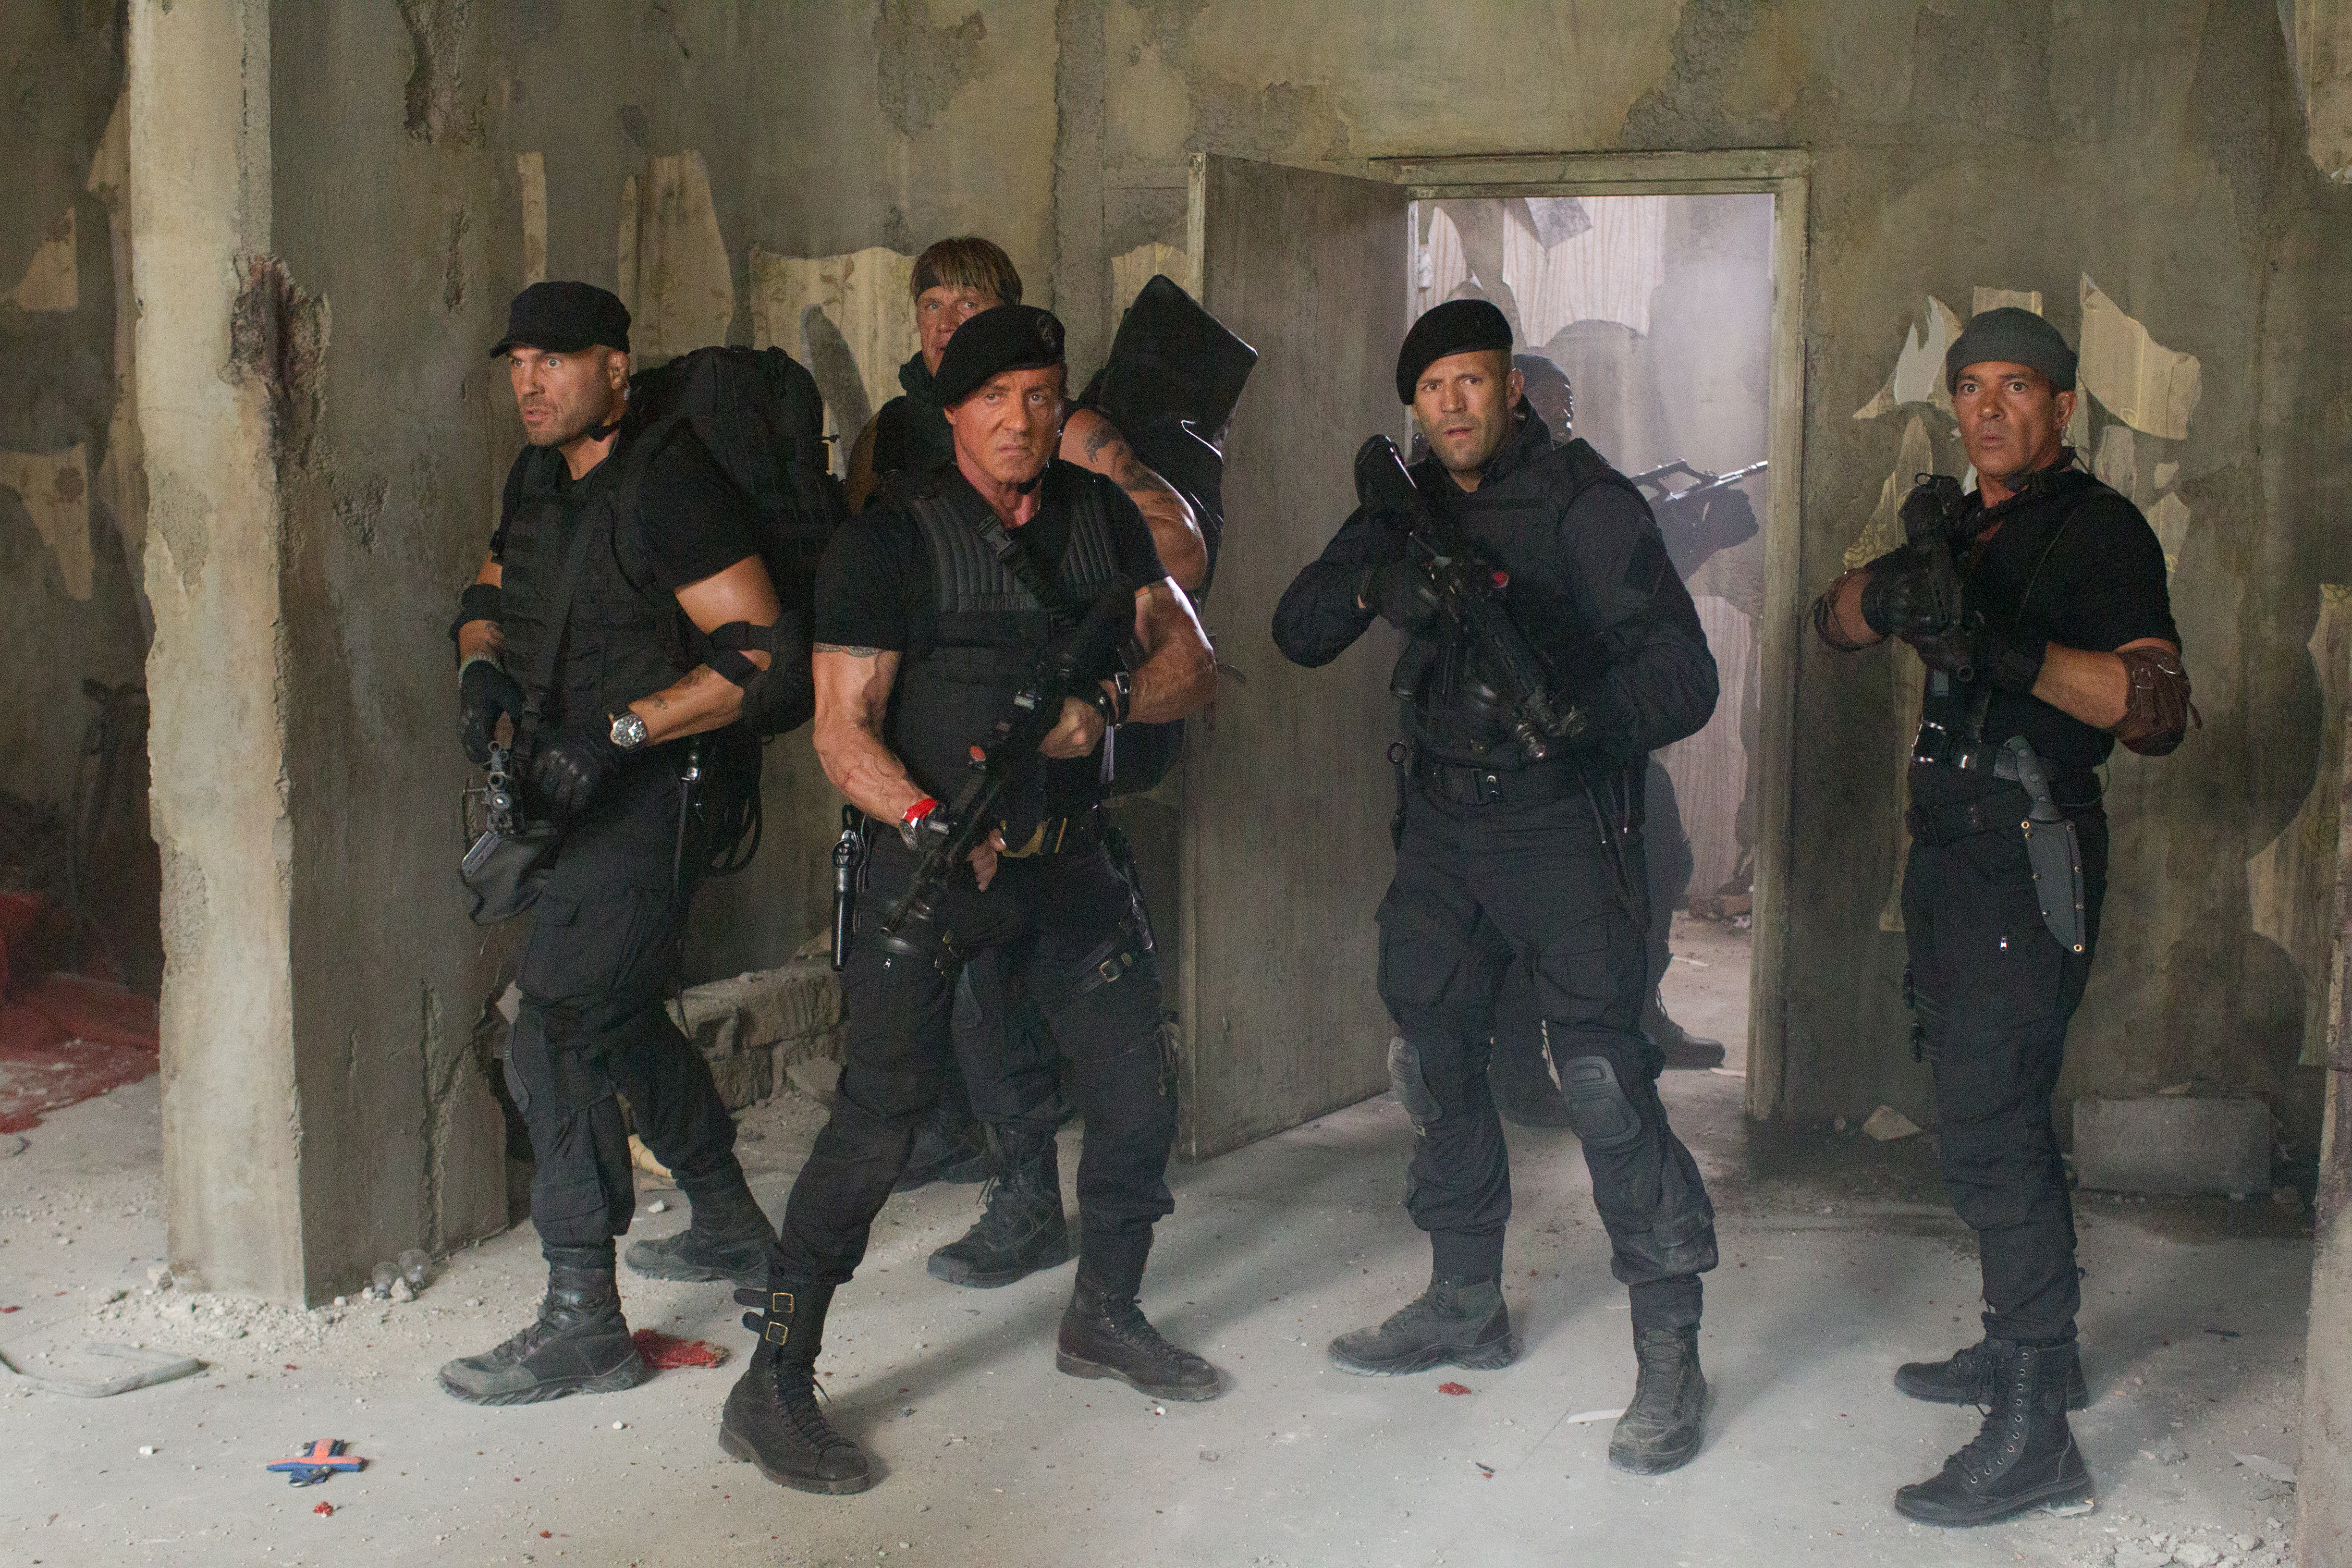 The expendables 3 4k ultra hd wallpaper background image 4896x3264 id 659262 wallpaper abyss - Security guard hd images ...